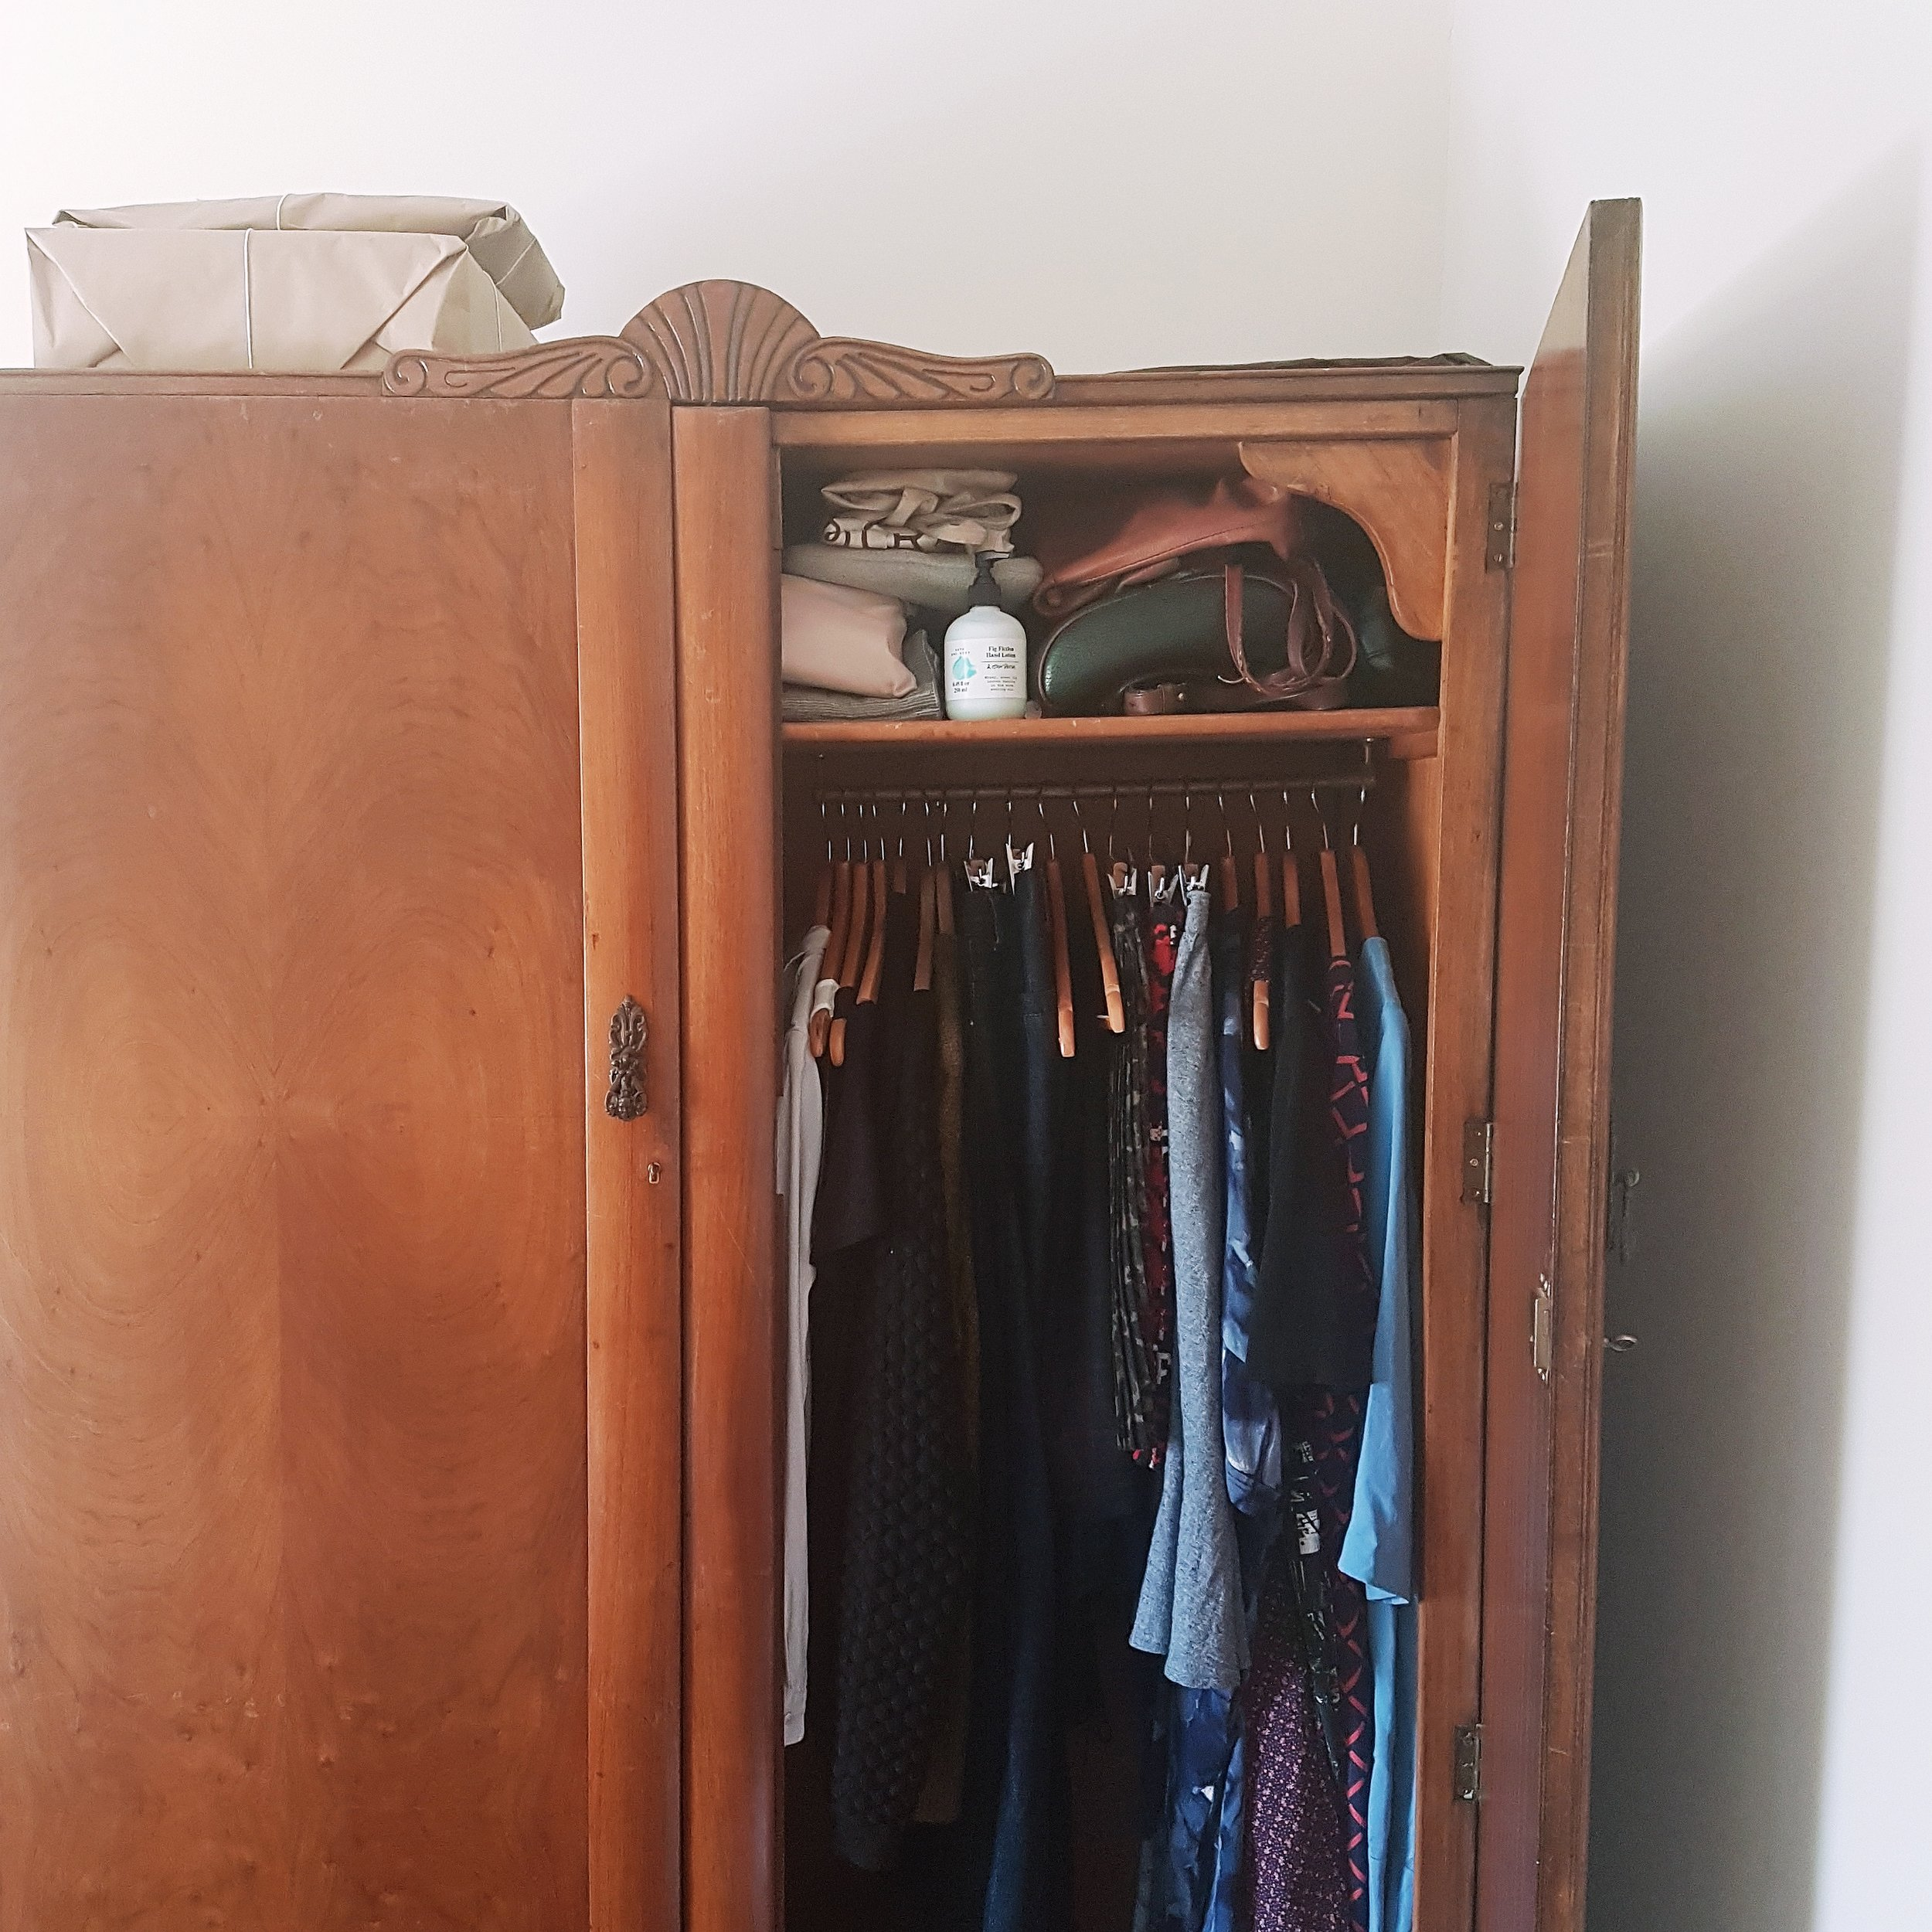 My wardrobe feels more cohesive than ever, now that I have narrowed down my personal style.